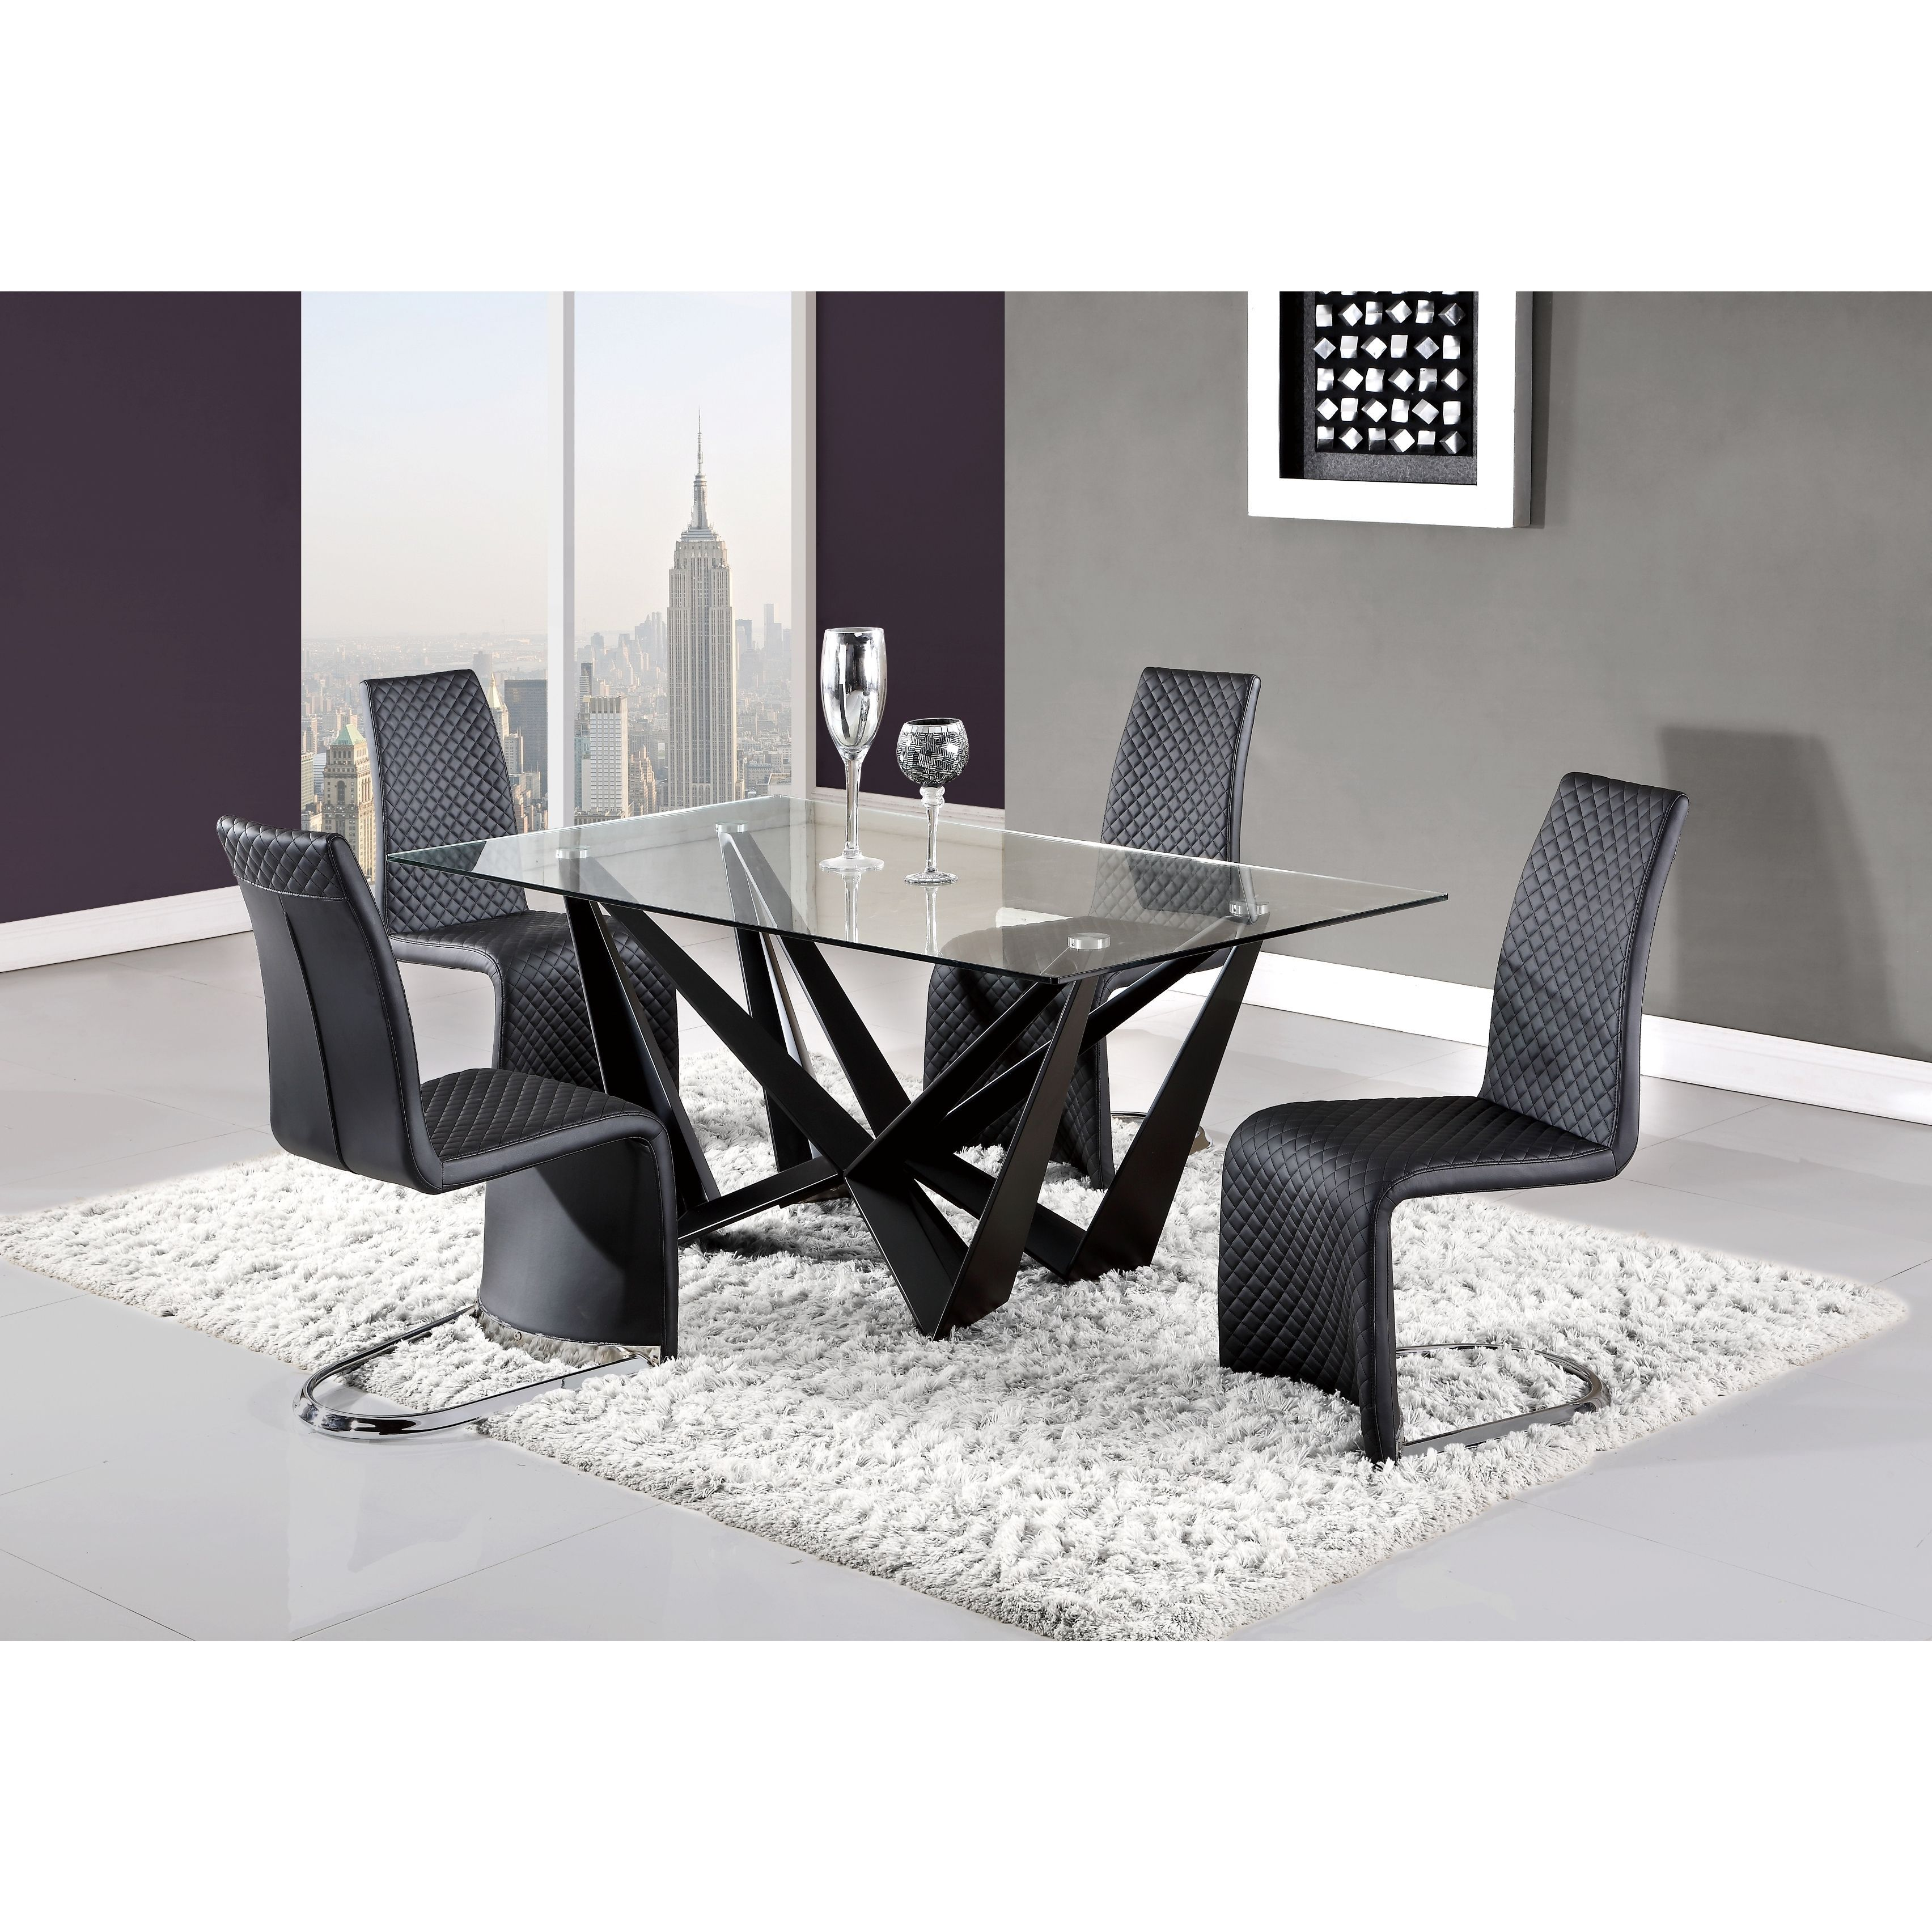 Quilted Black Curved Dining Chair With Images Dining Table